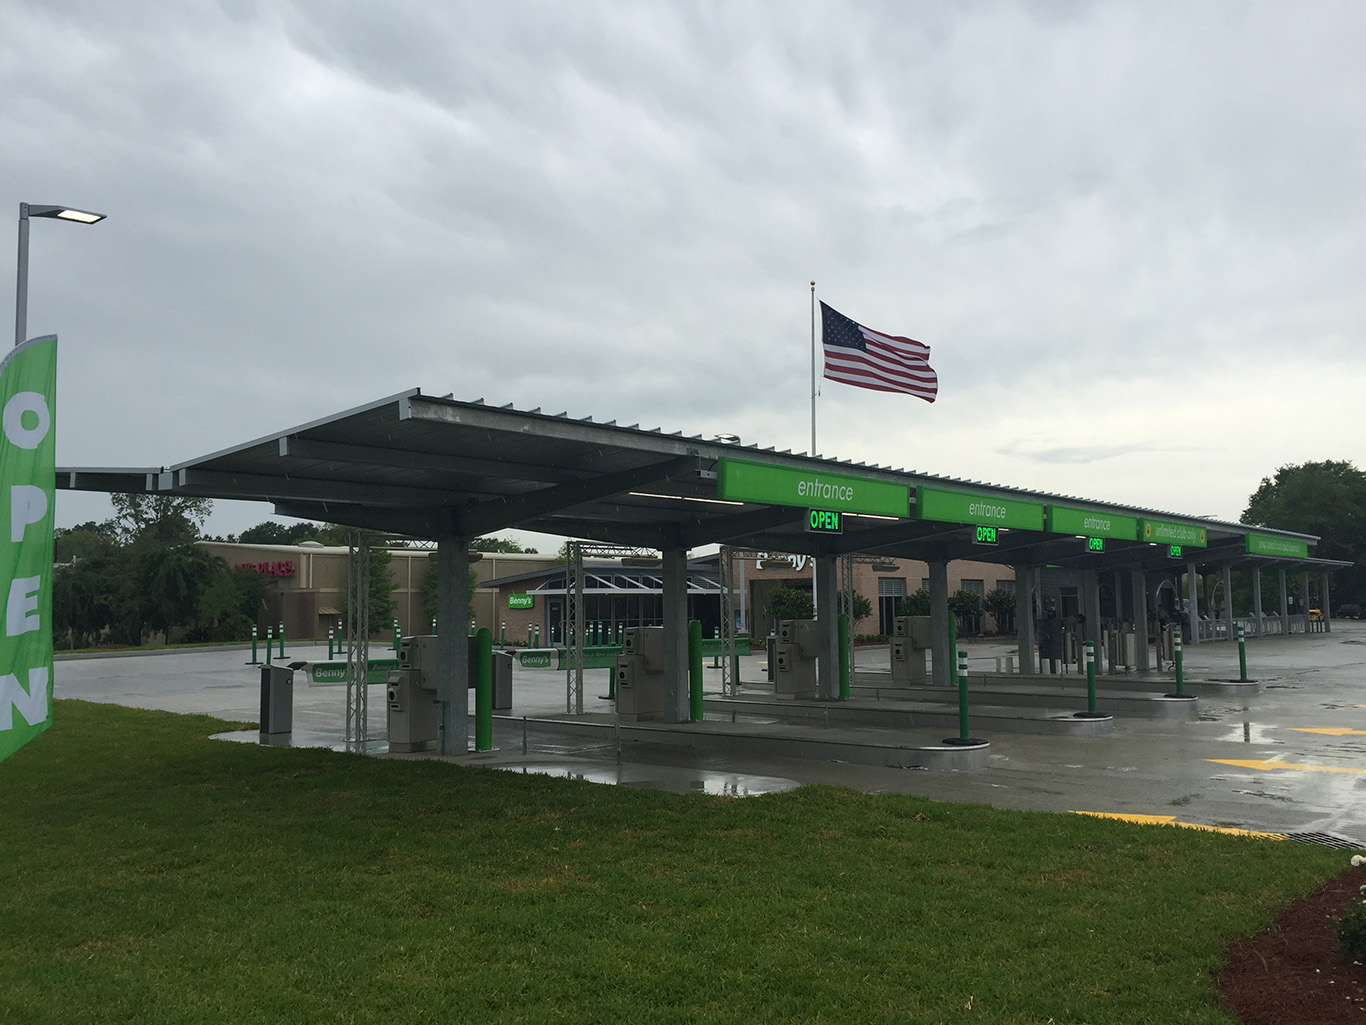 car washesvacuum canopies cs canopy - Open Canopy 2016